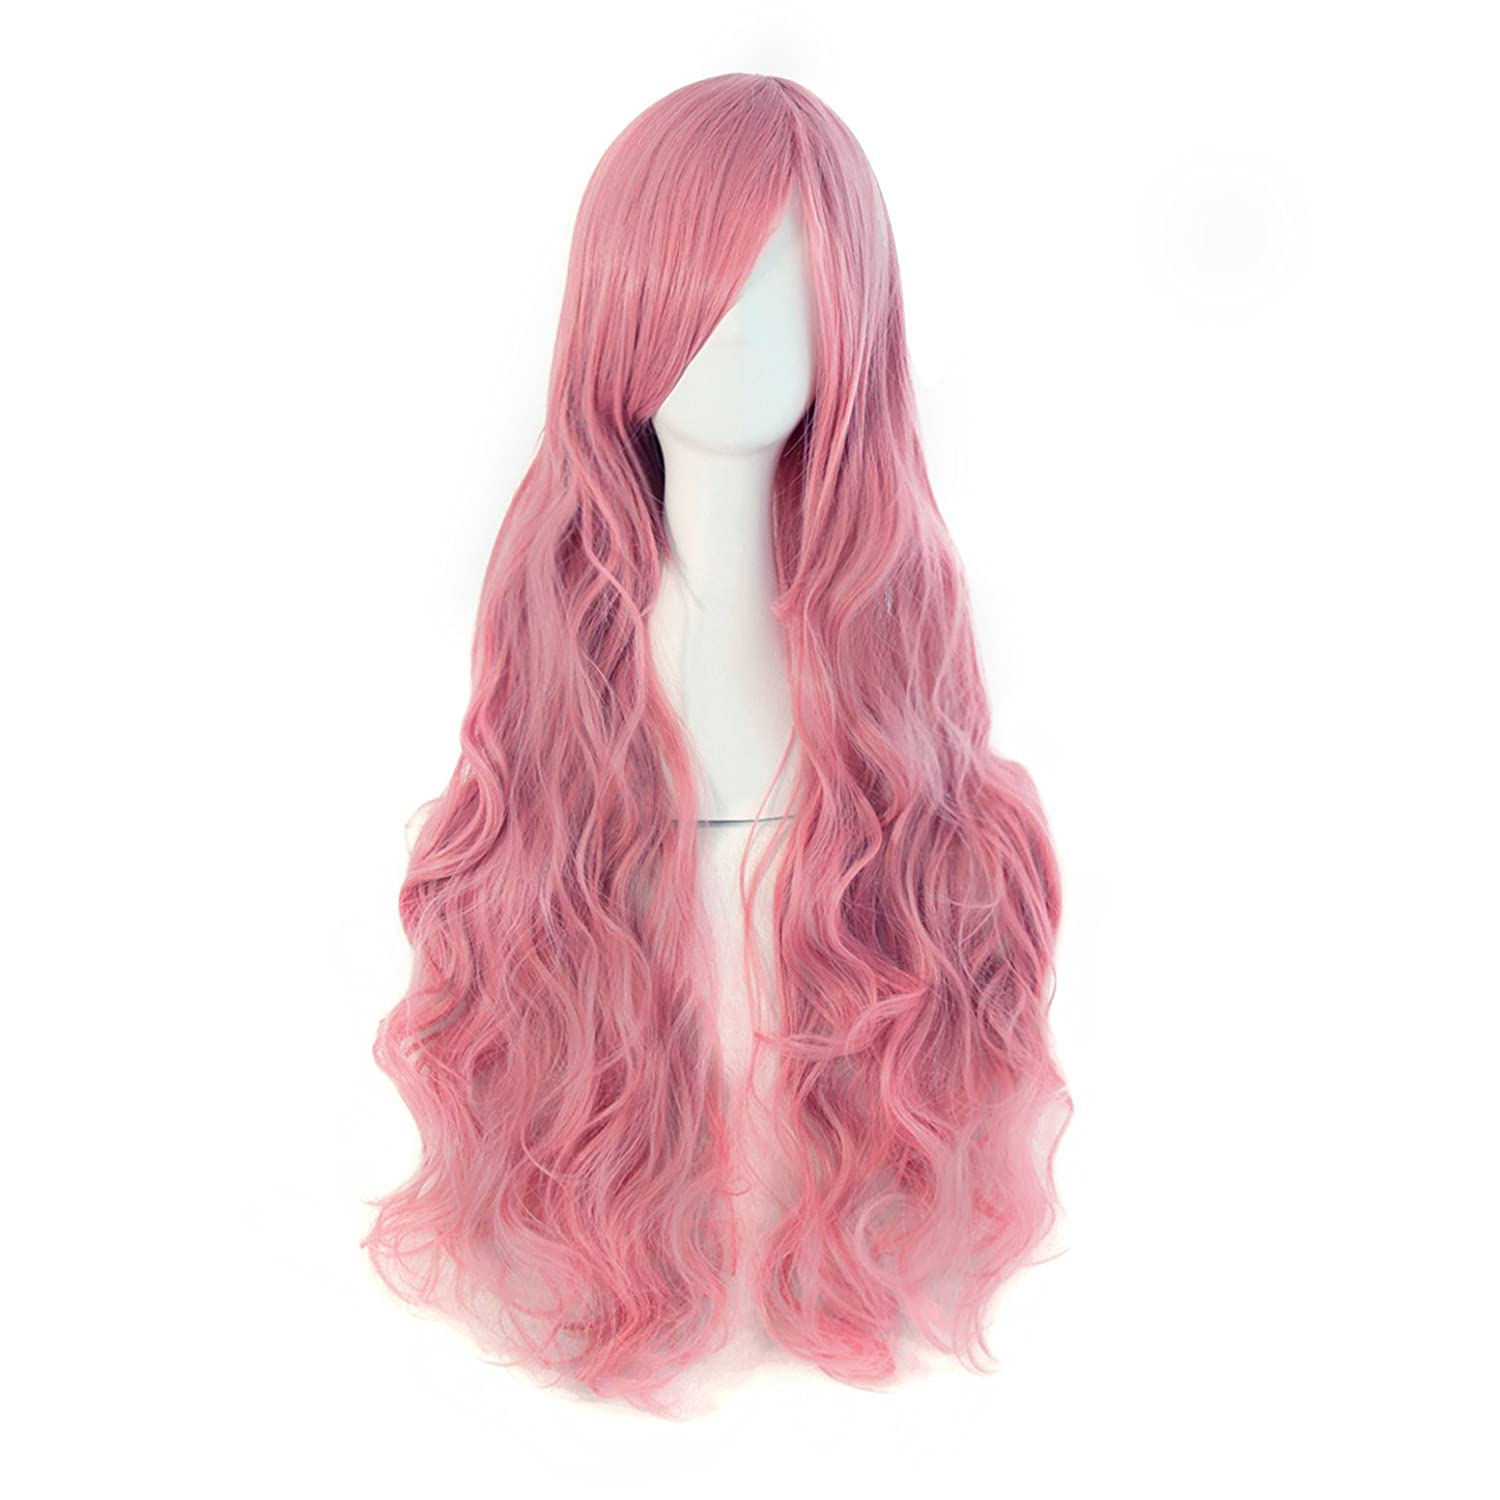 MapofBeauty 32 80cm Long Hair Spiral Curly Cosplay Costume Wig (Light Blonde)